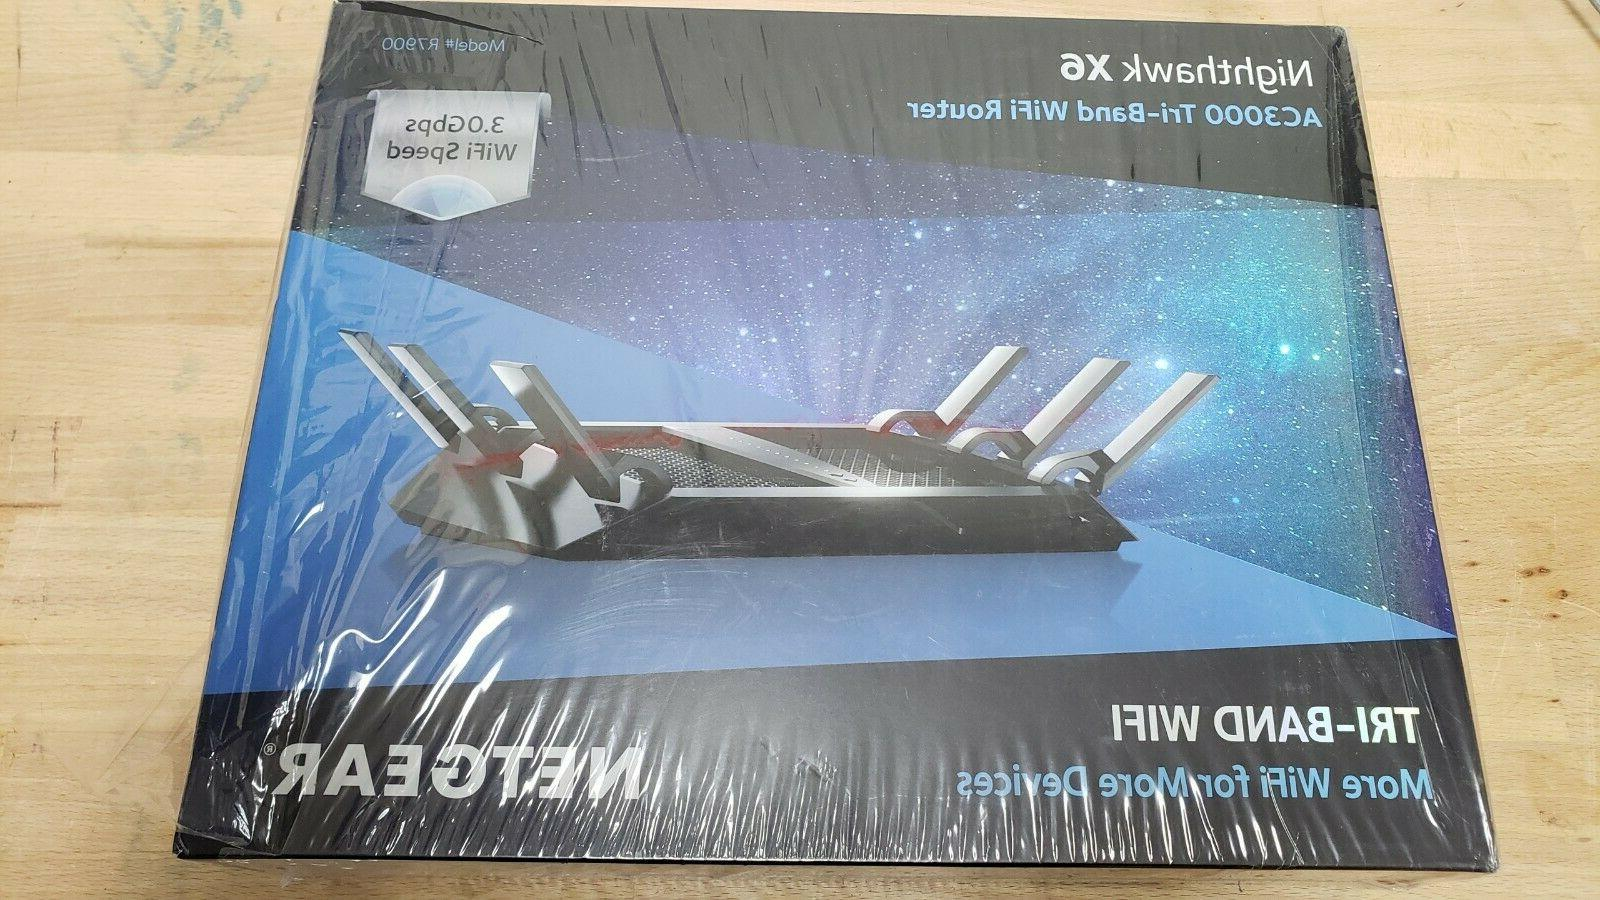 nighthawk x6 ac3000 tri band smart wifi